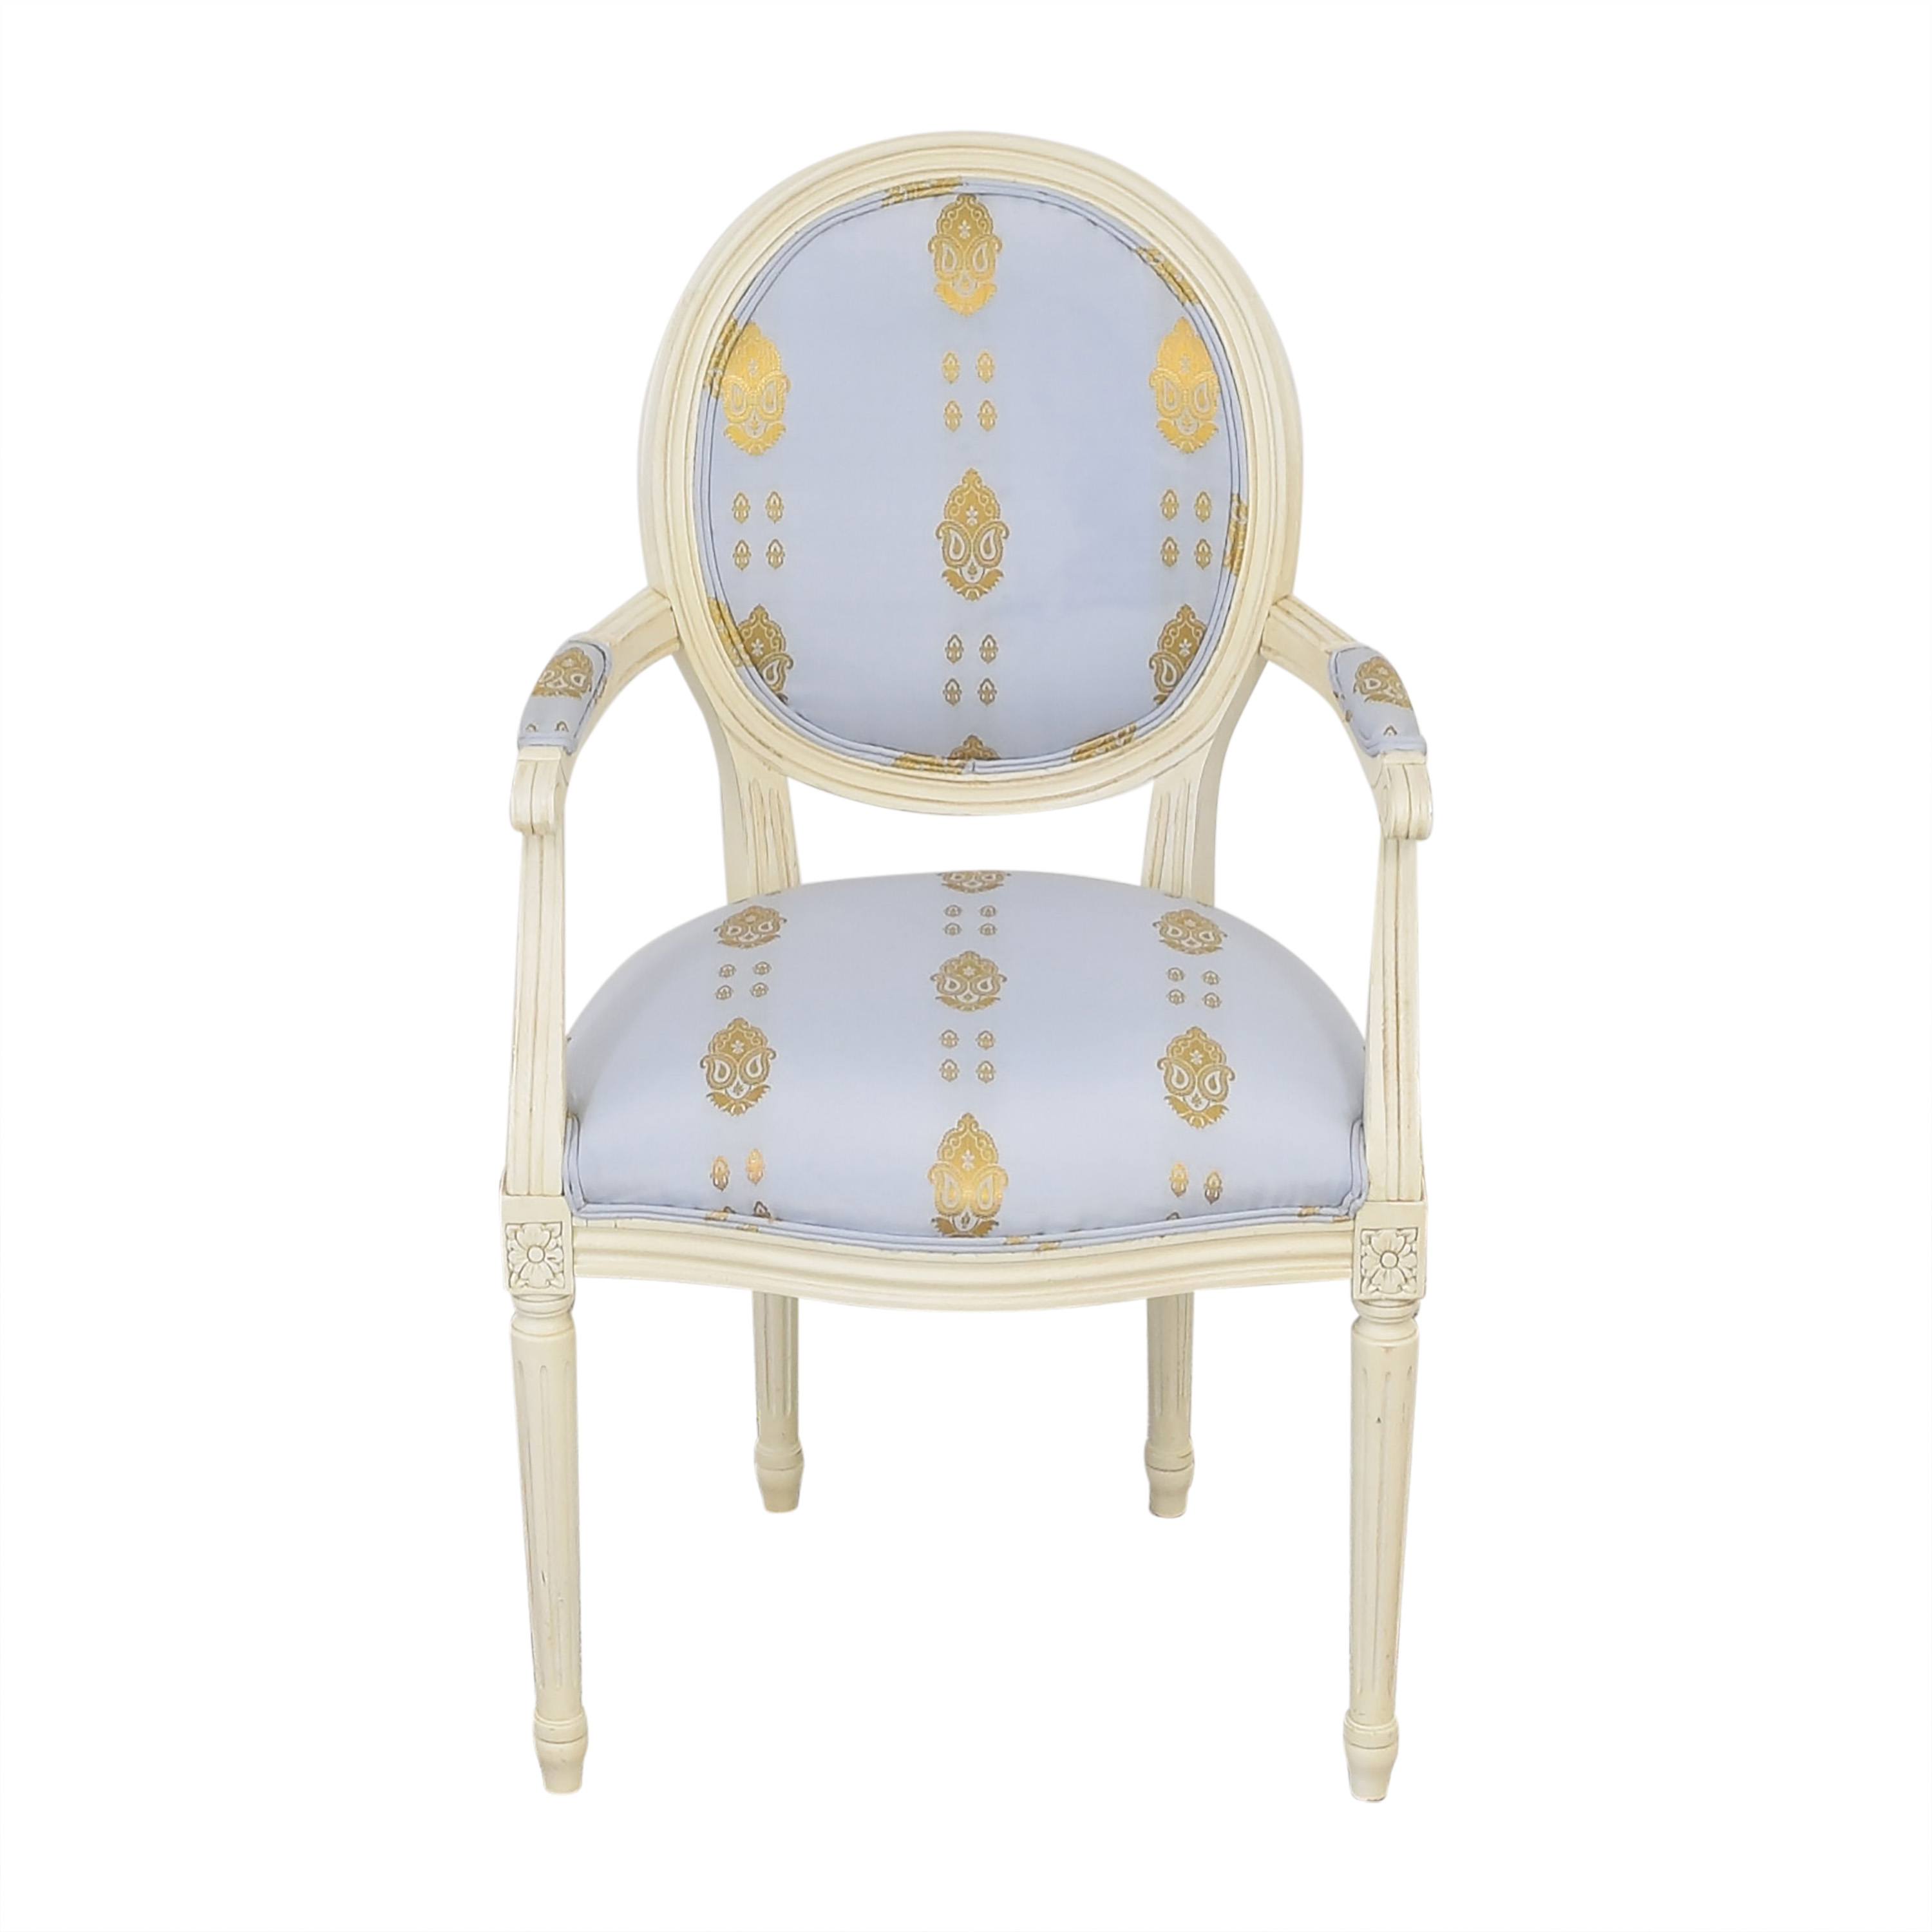 Ethan Allen Ethan Allen French Style Arm Chair ct